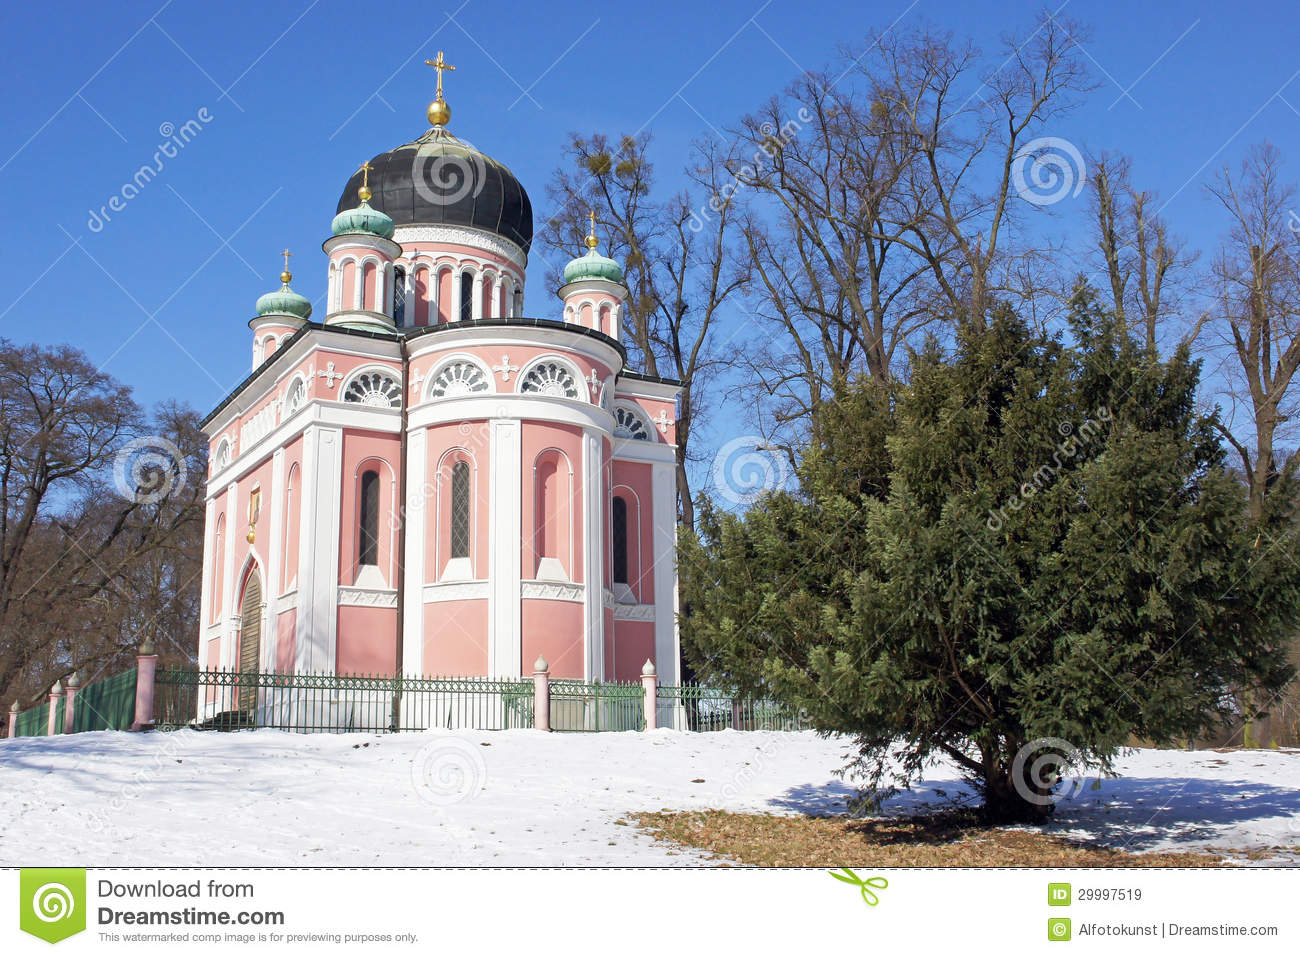 russische kirche potsdam deutschland stockbild bild von ferien zinsen 29997519. Black Bedroom Furniture Sets. Home Design Ideas